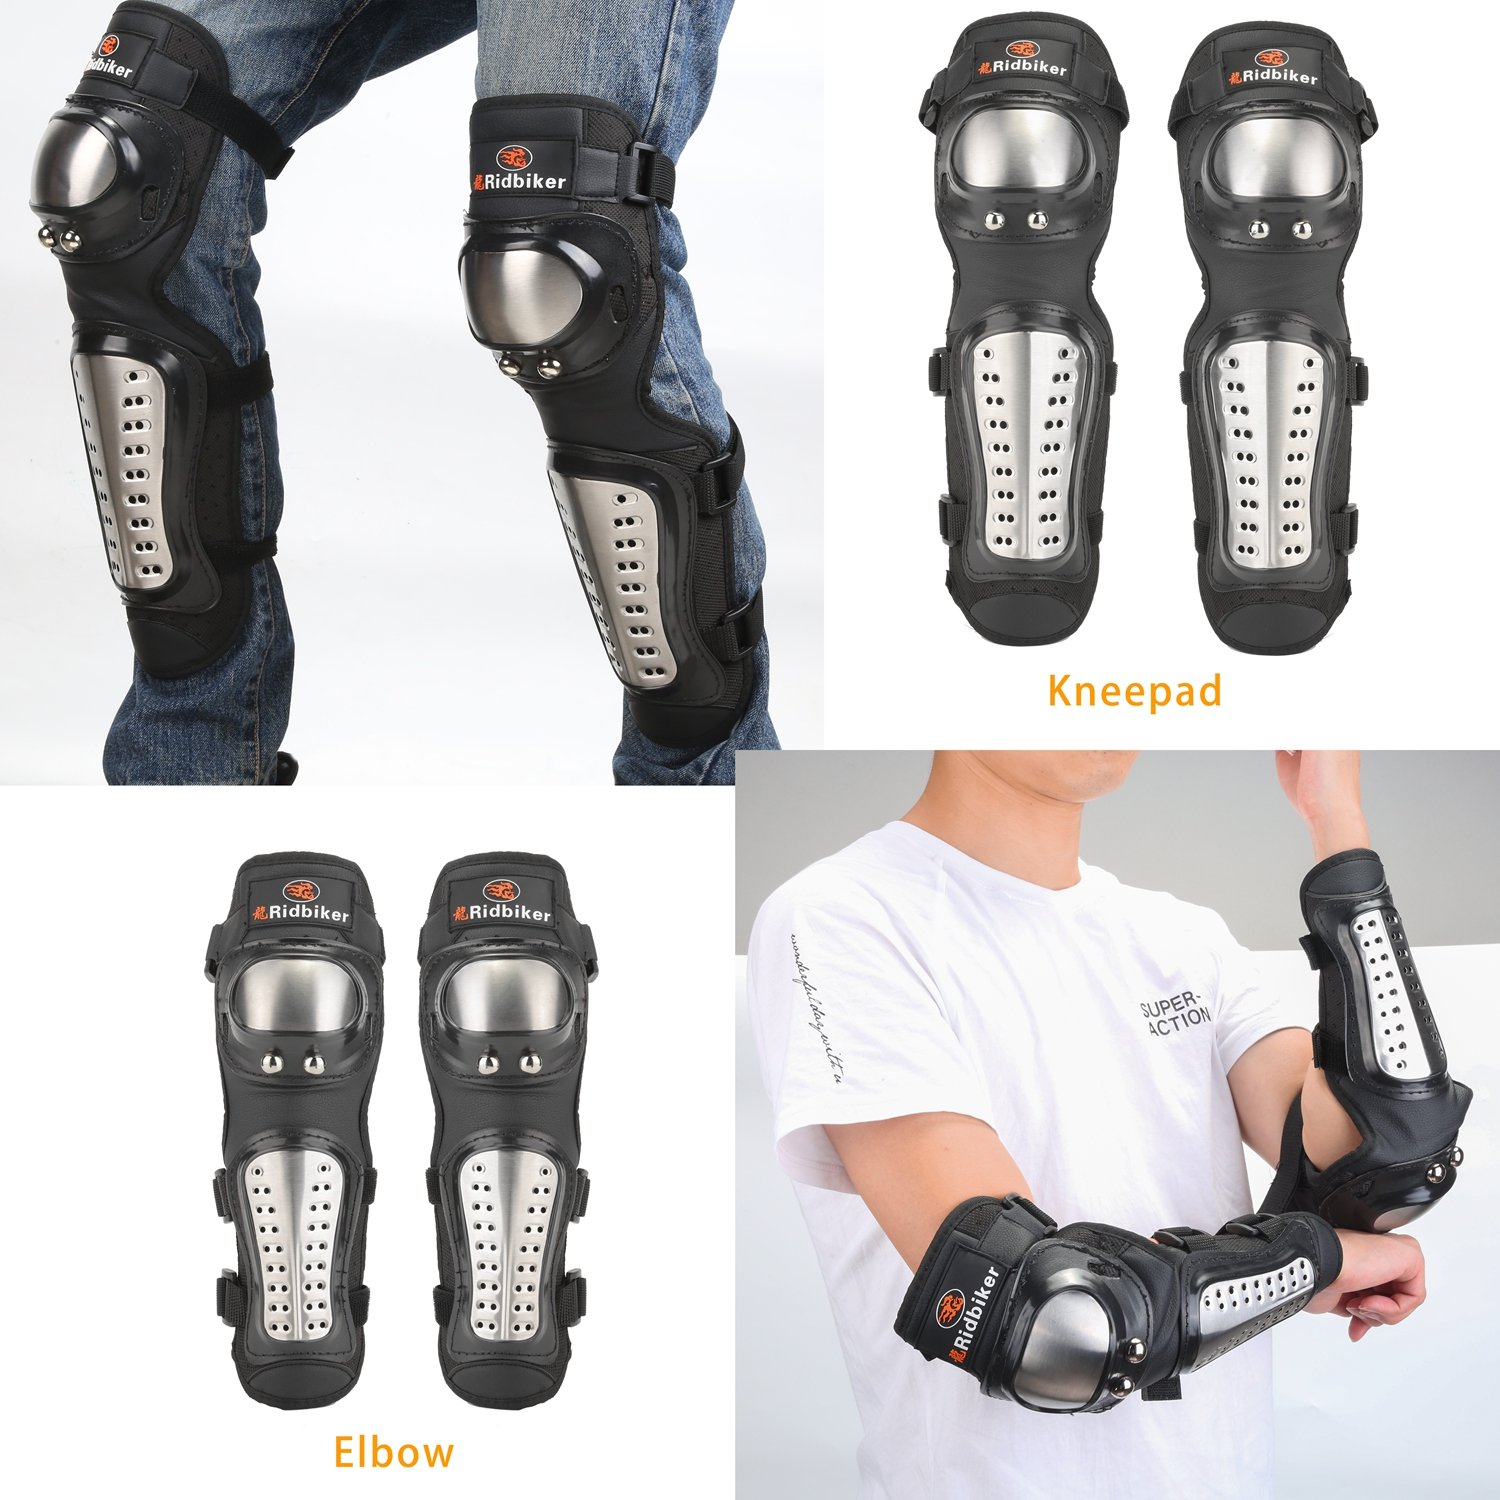 2 Pair of Stainless Steel Motocross Elbow Knee Shin Guard Pads 4Pcs Breathable Adjustable Knee Cap Pads Protector Elbow Armor for Motorcycle Cycling Racing by Ridbiker (Image #4)